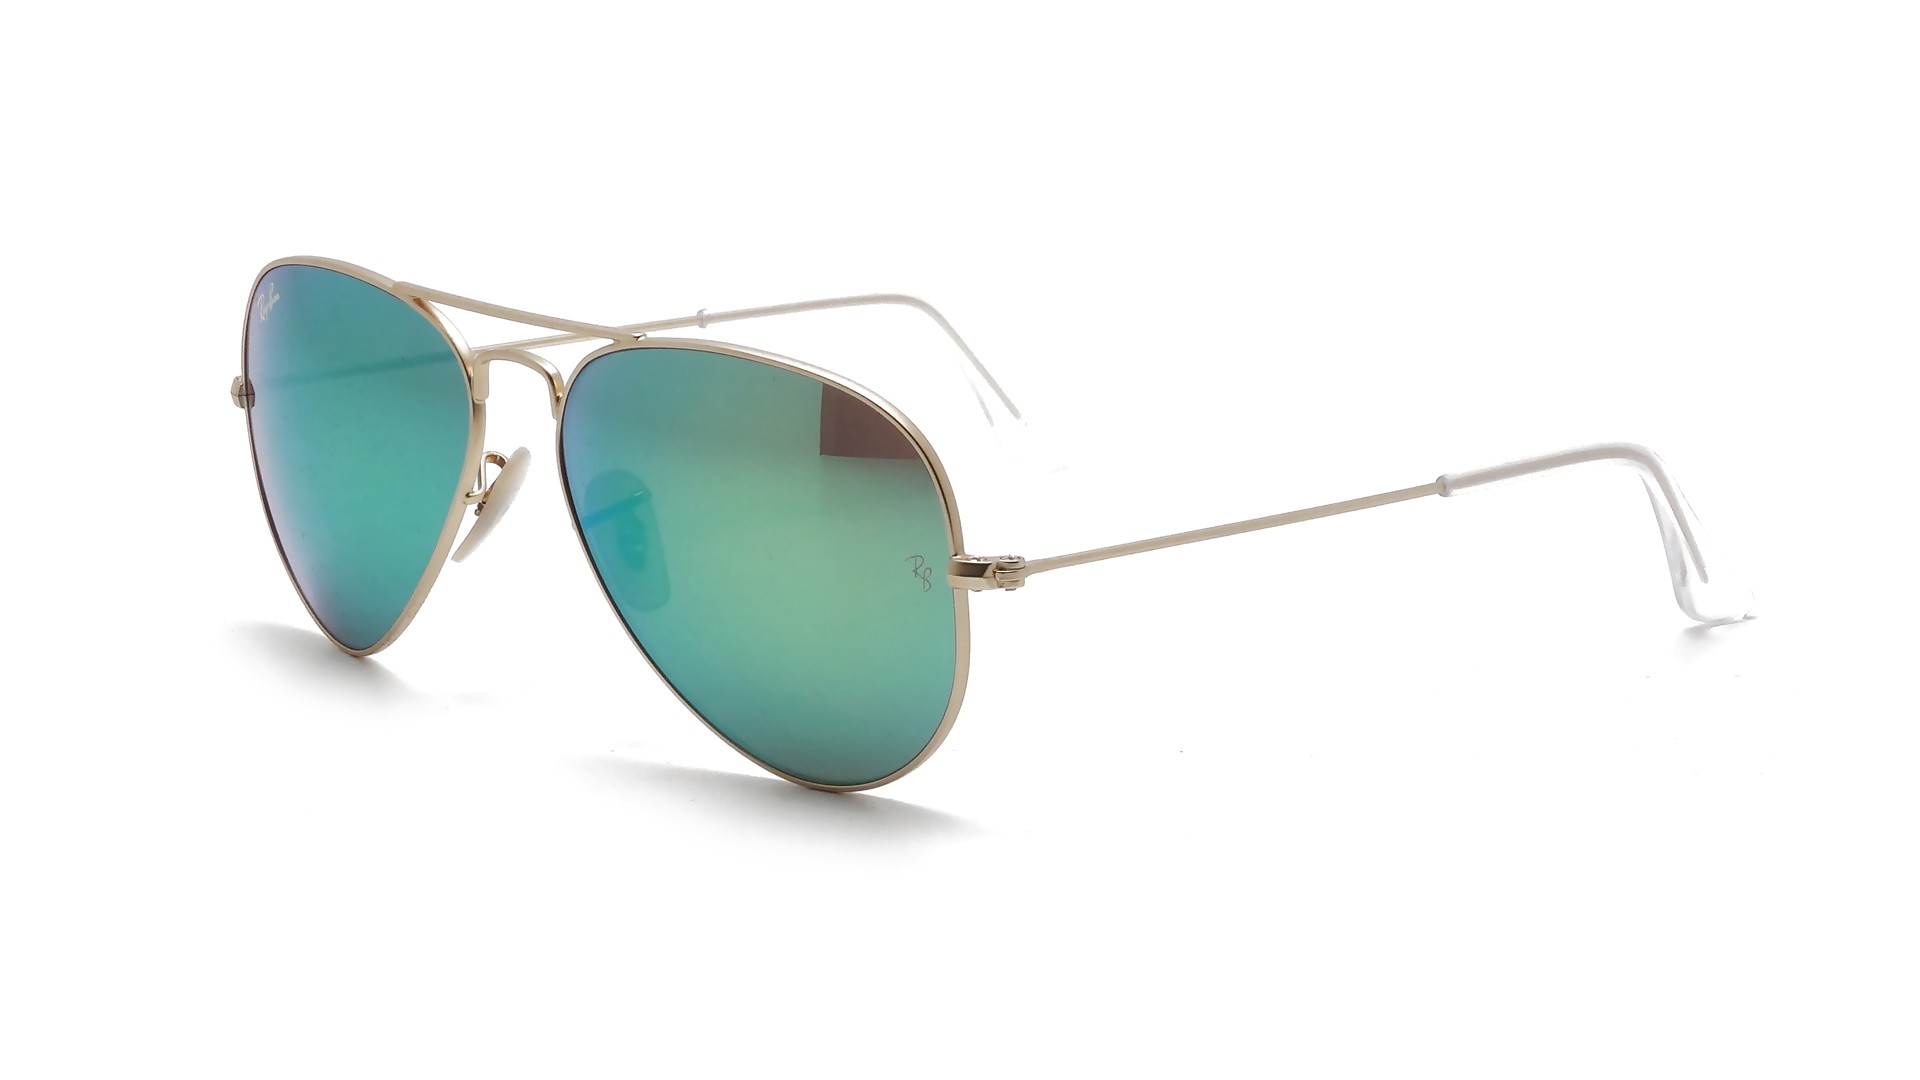 Ray-Ban Aviator Metal Or RB3025 112 19 58-14   Prix 69,20 €   Visiofactory 769bac7e6529